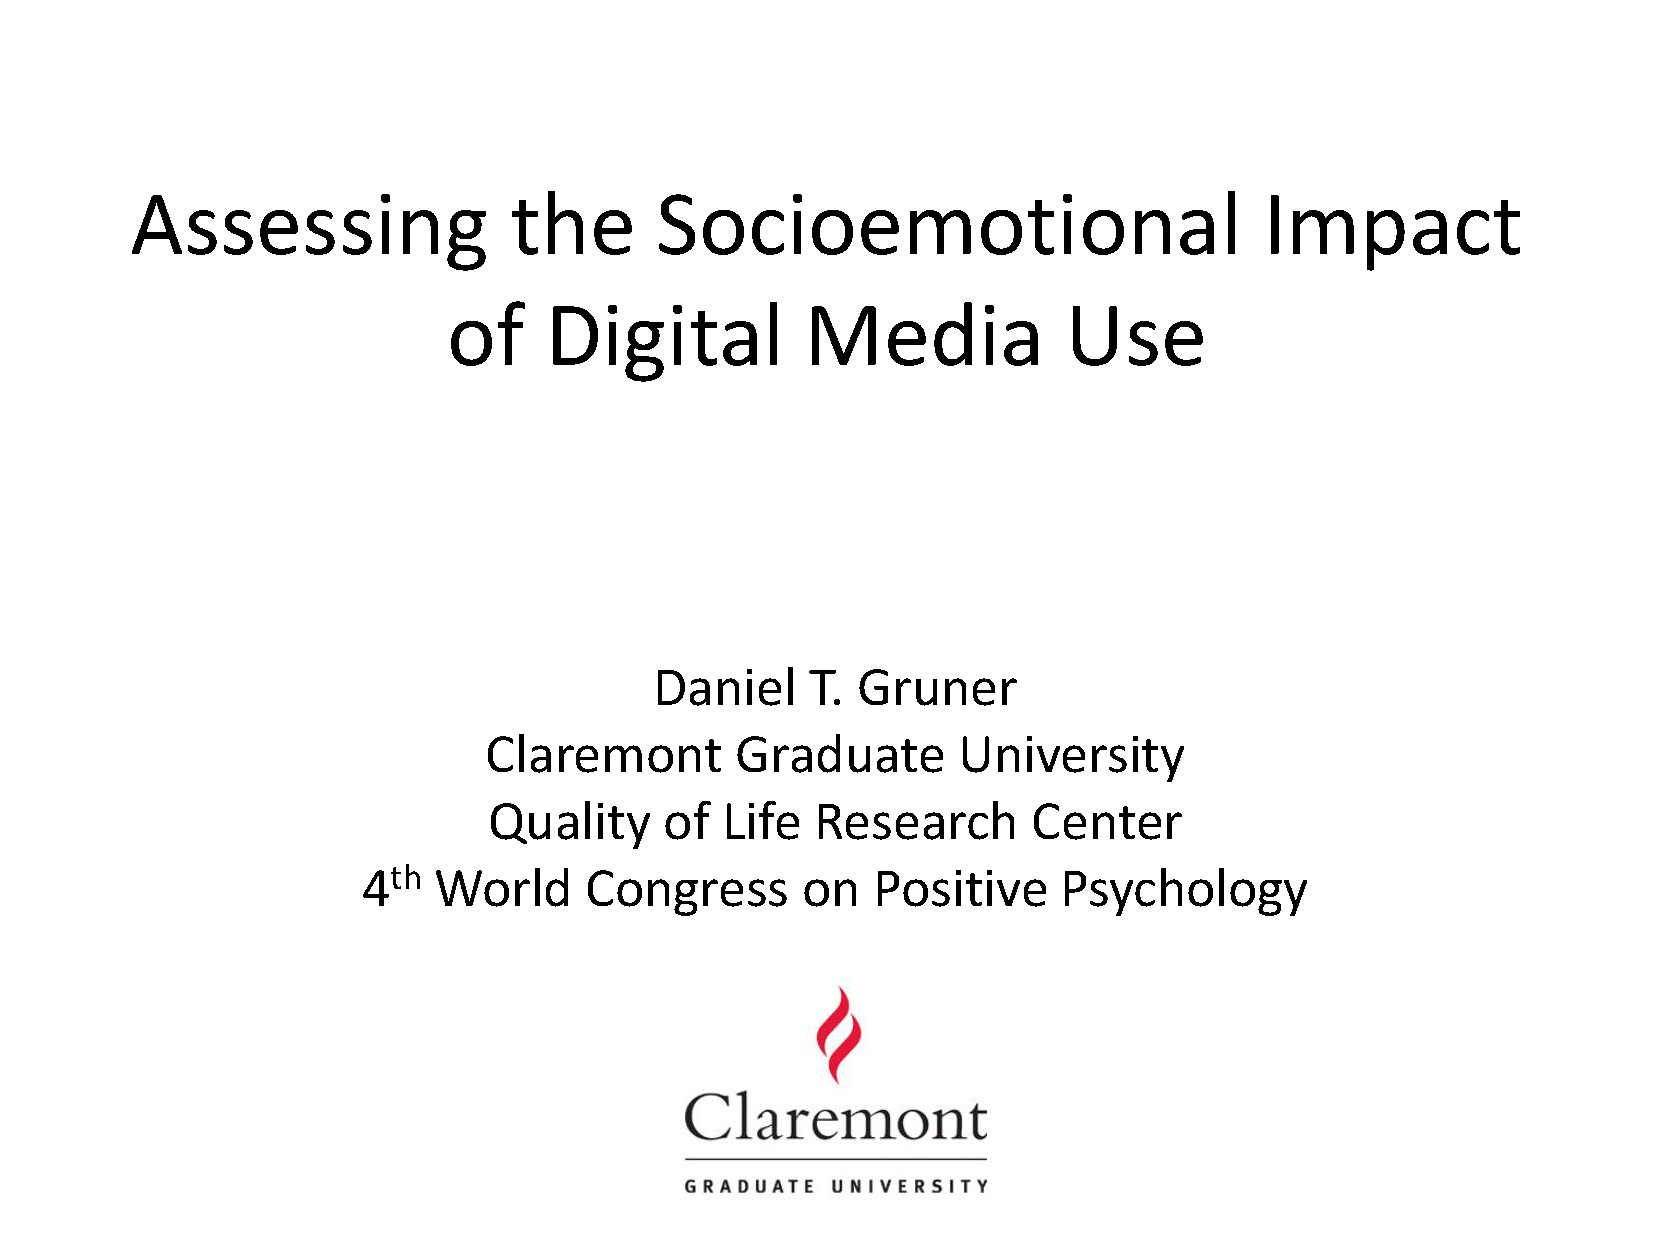 Pages from SY18.1  Assessing the Socioemotional Impact of Digital Media Use A Study of Experience _Gruner